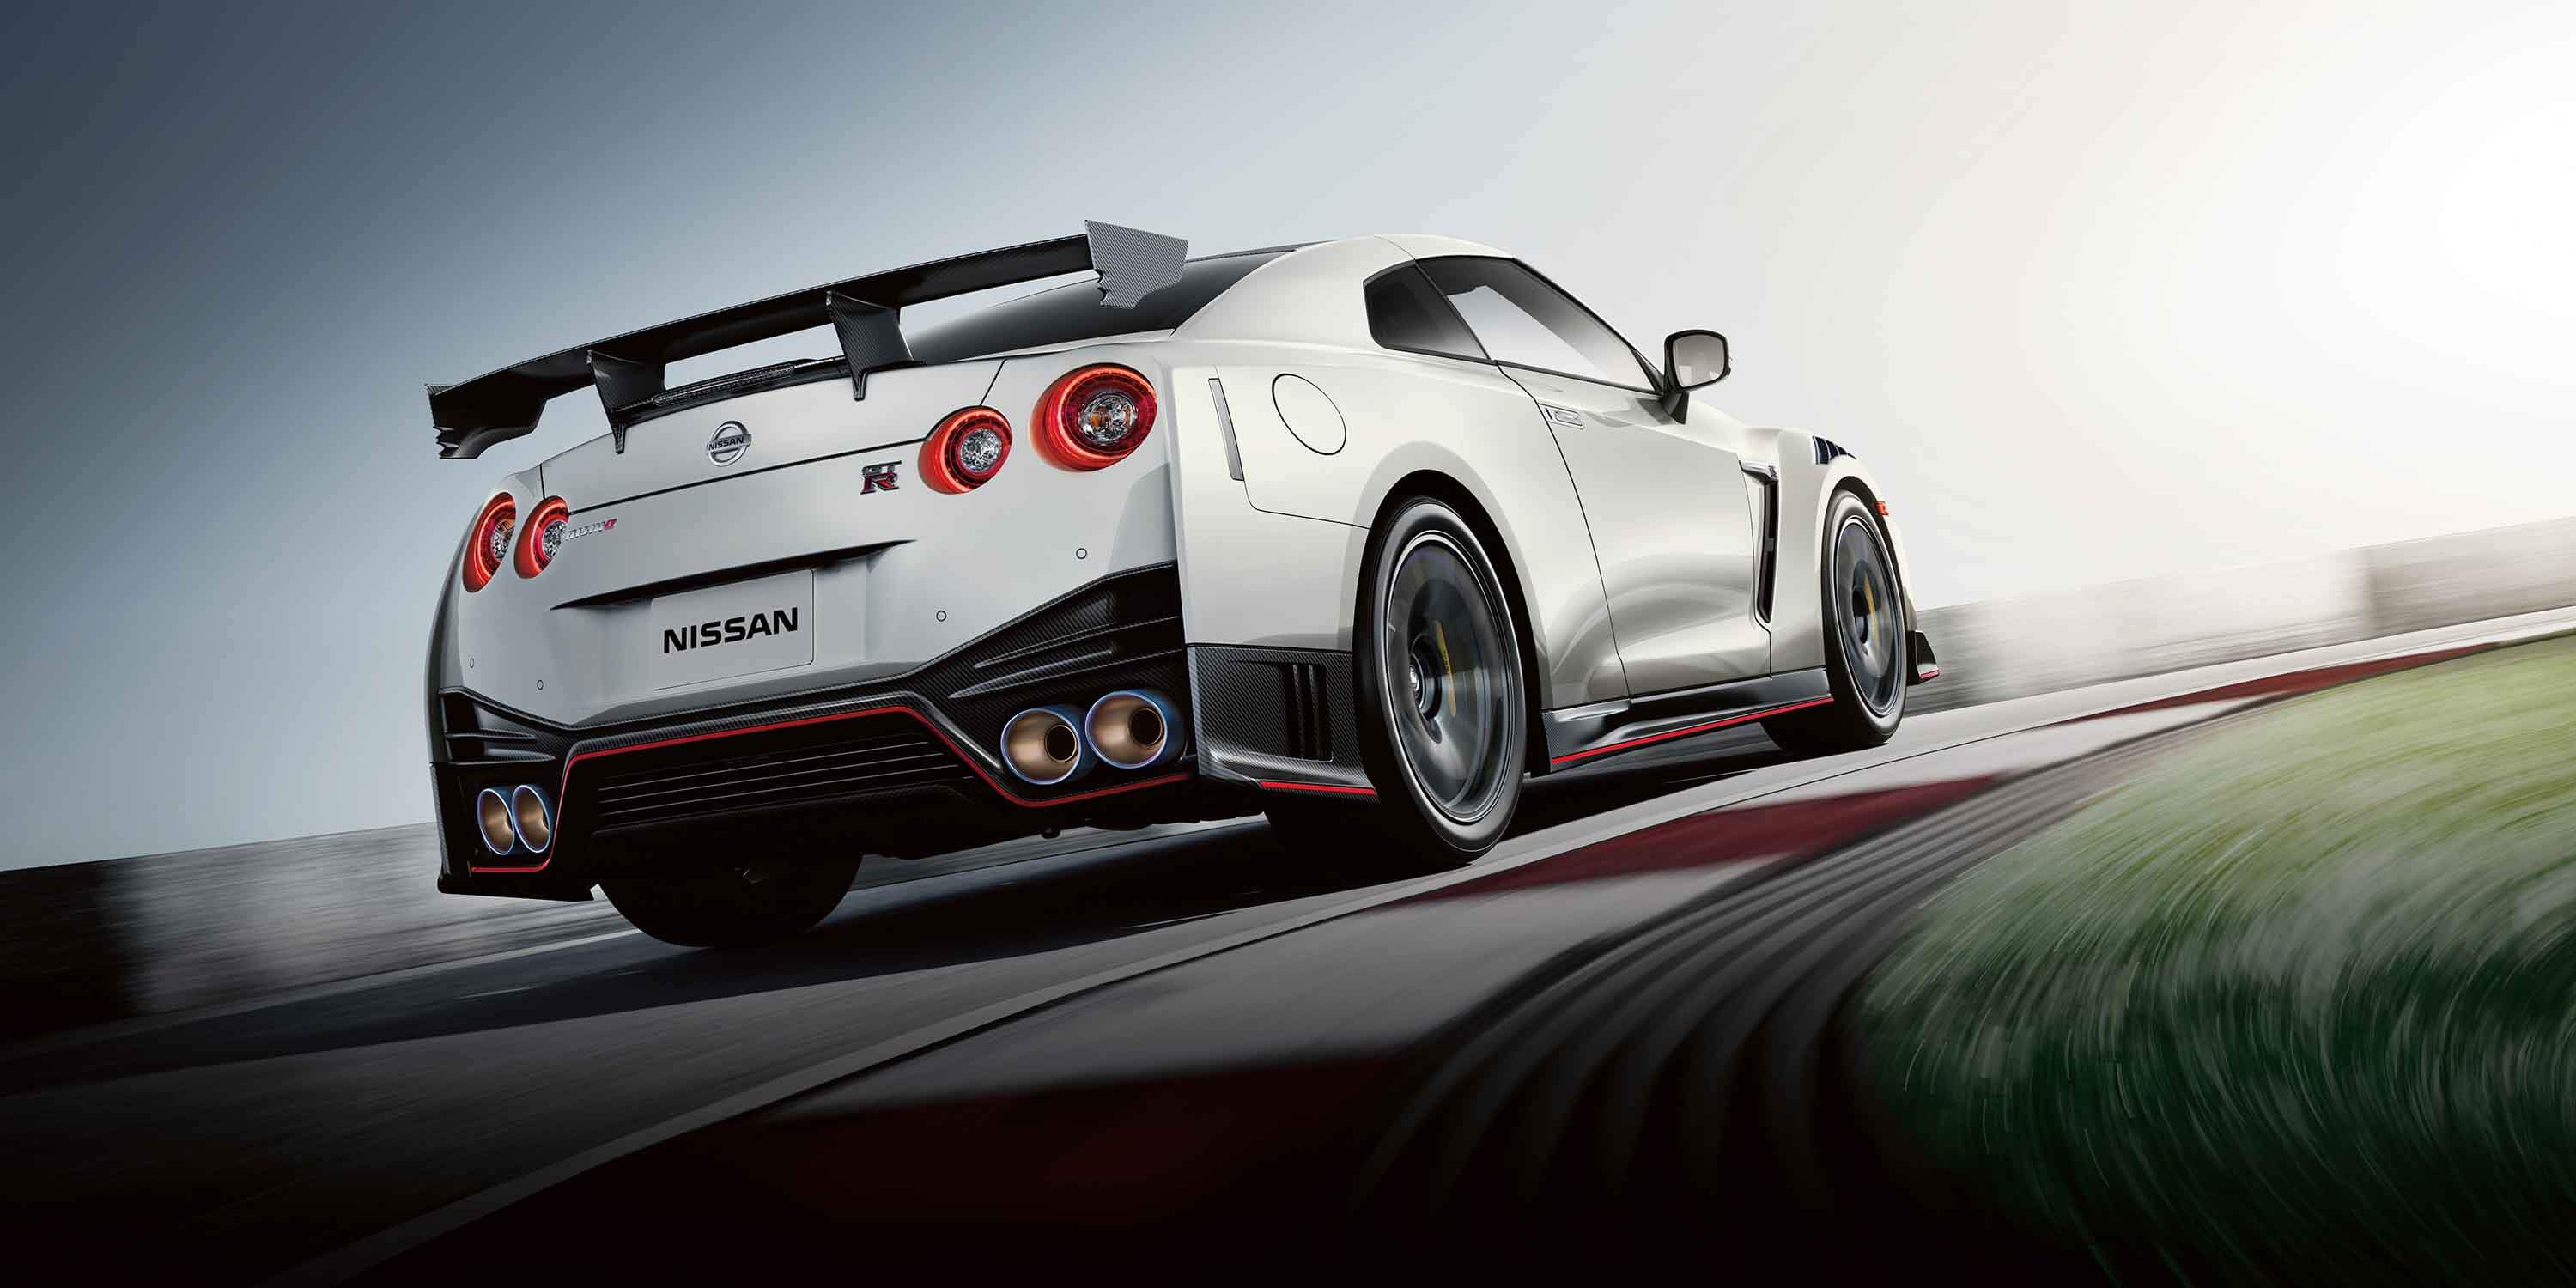 Nissan NISMO GT-R driving down racetrack